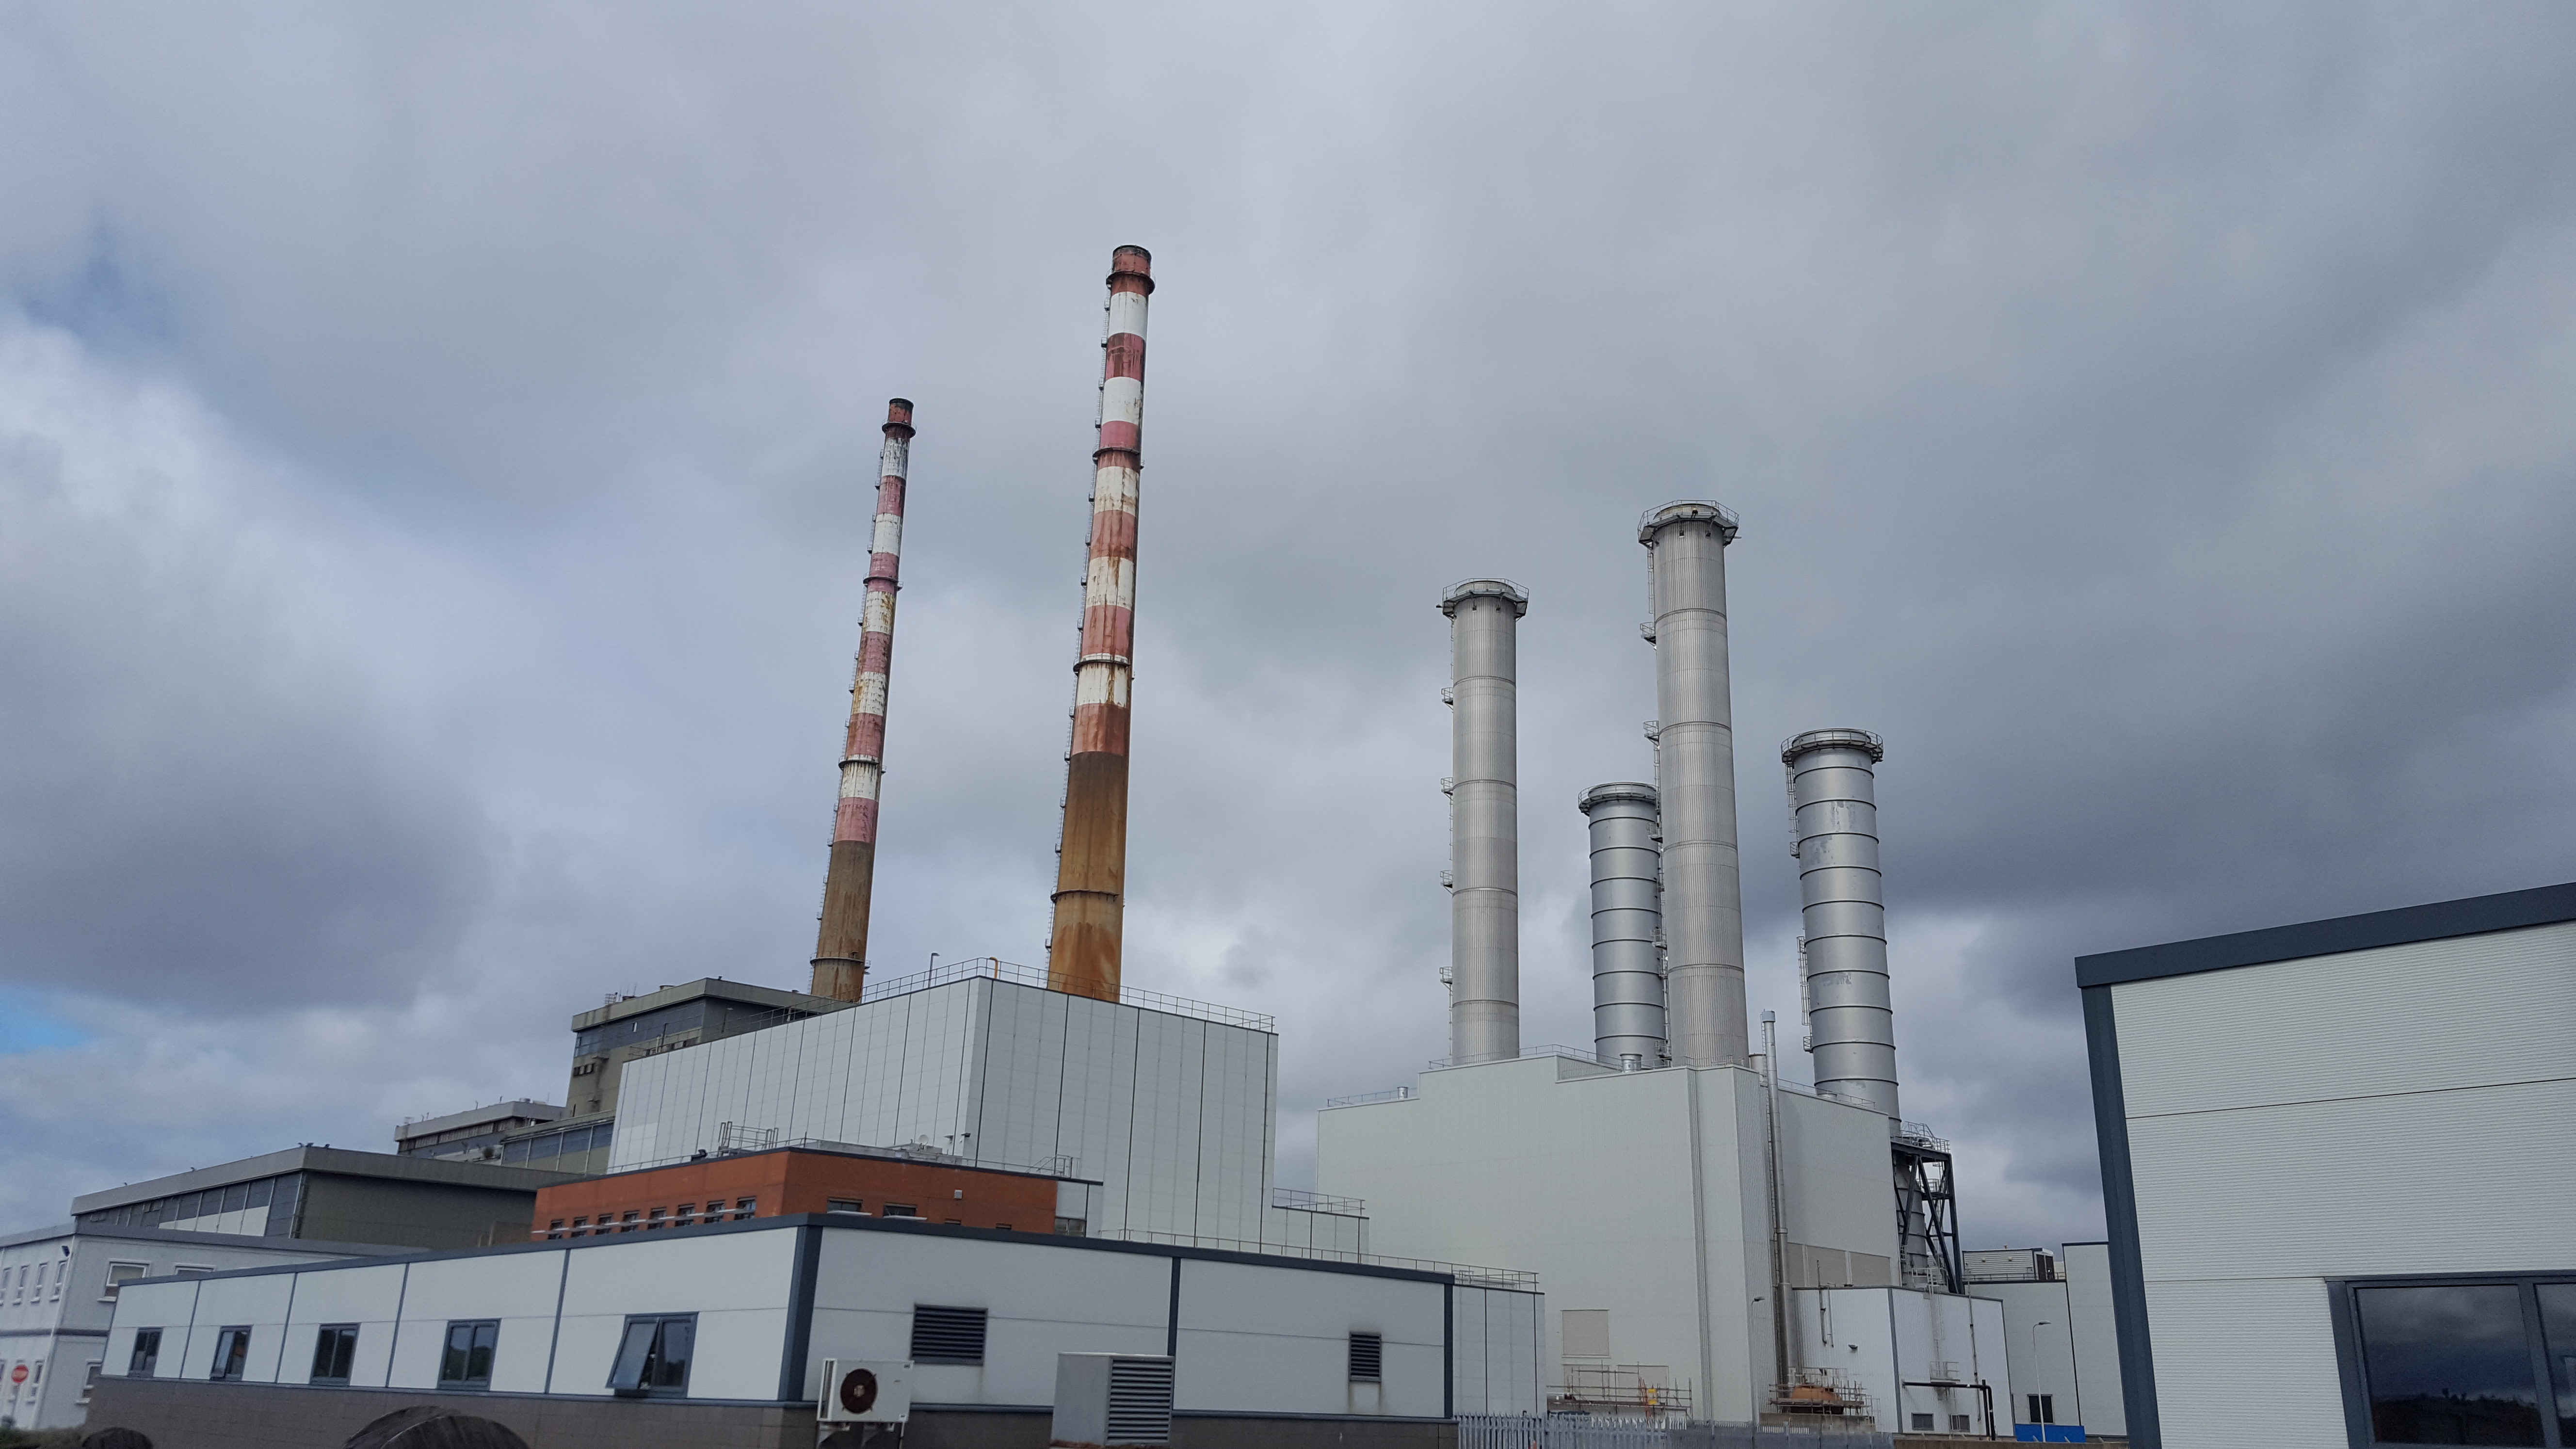 Historical and recent power station stacks